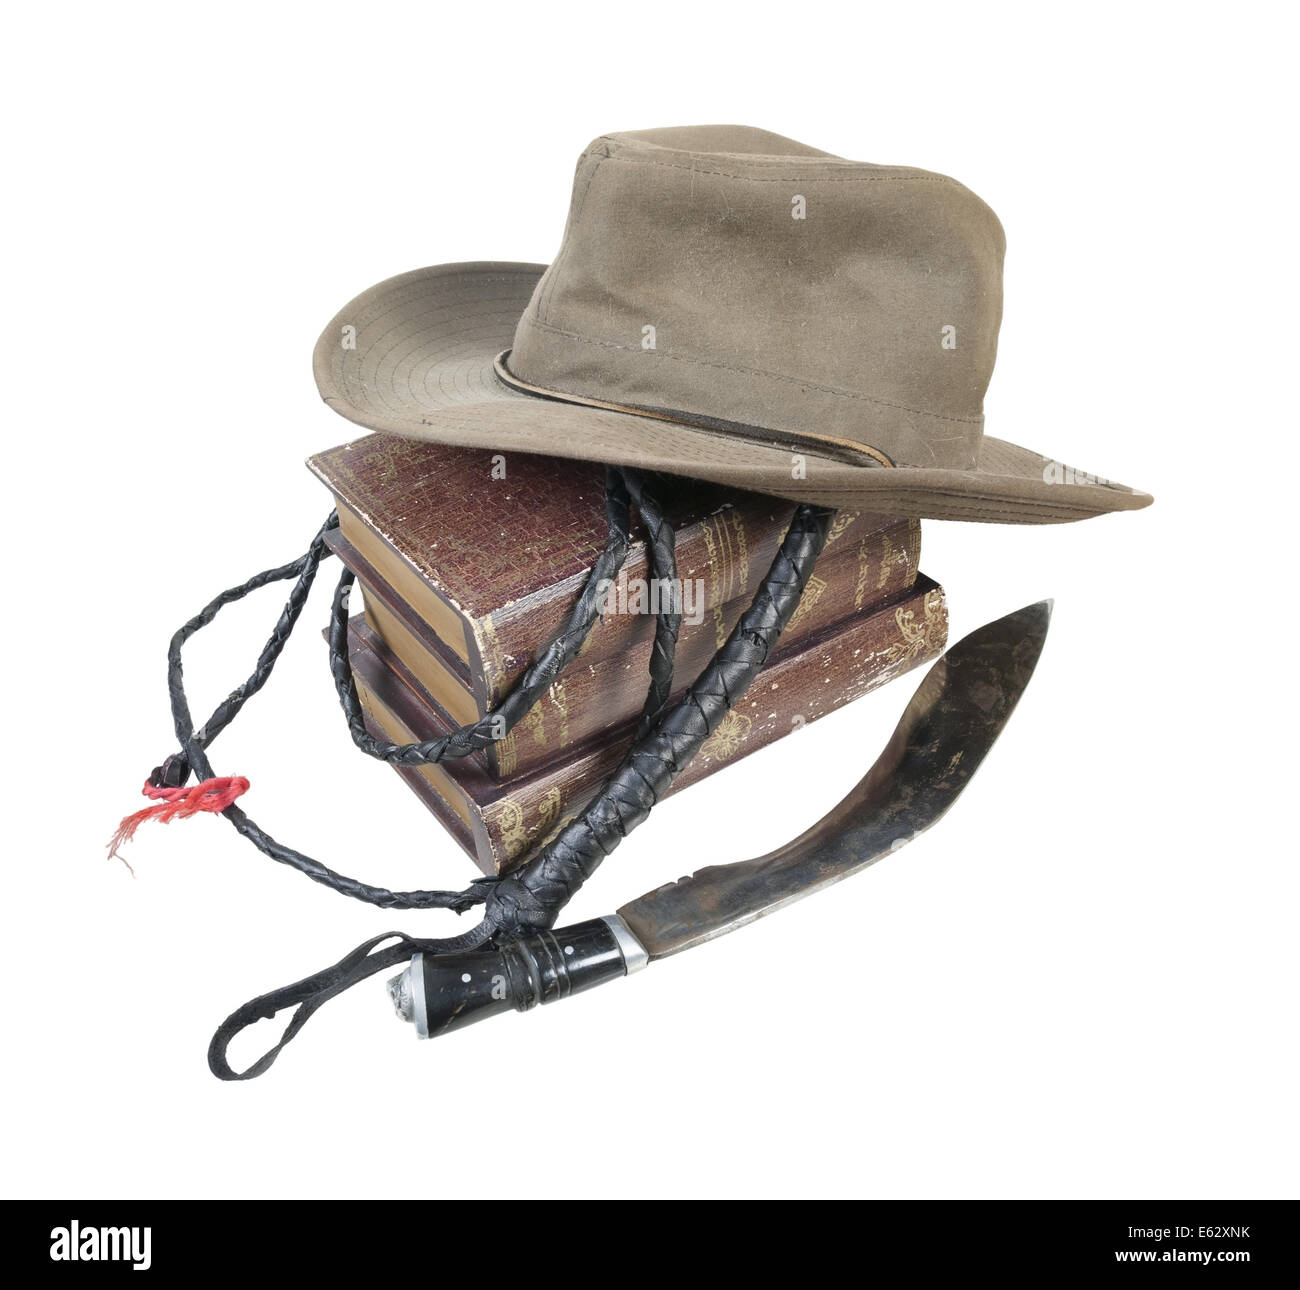 Adventure Books Aussie Hat Whip Dagger - path included - Stock Image